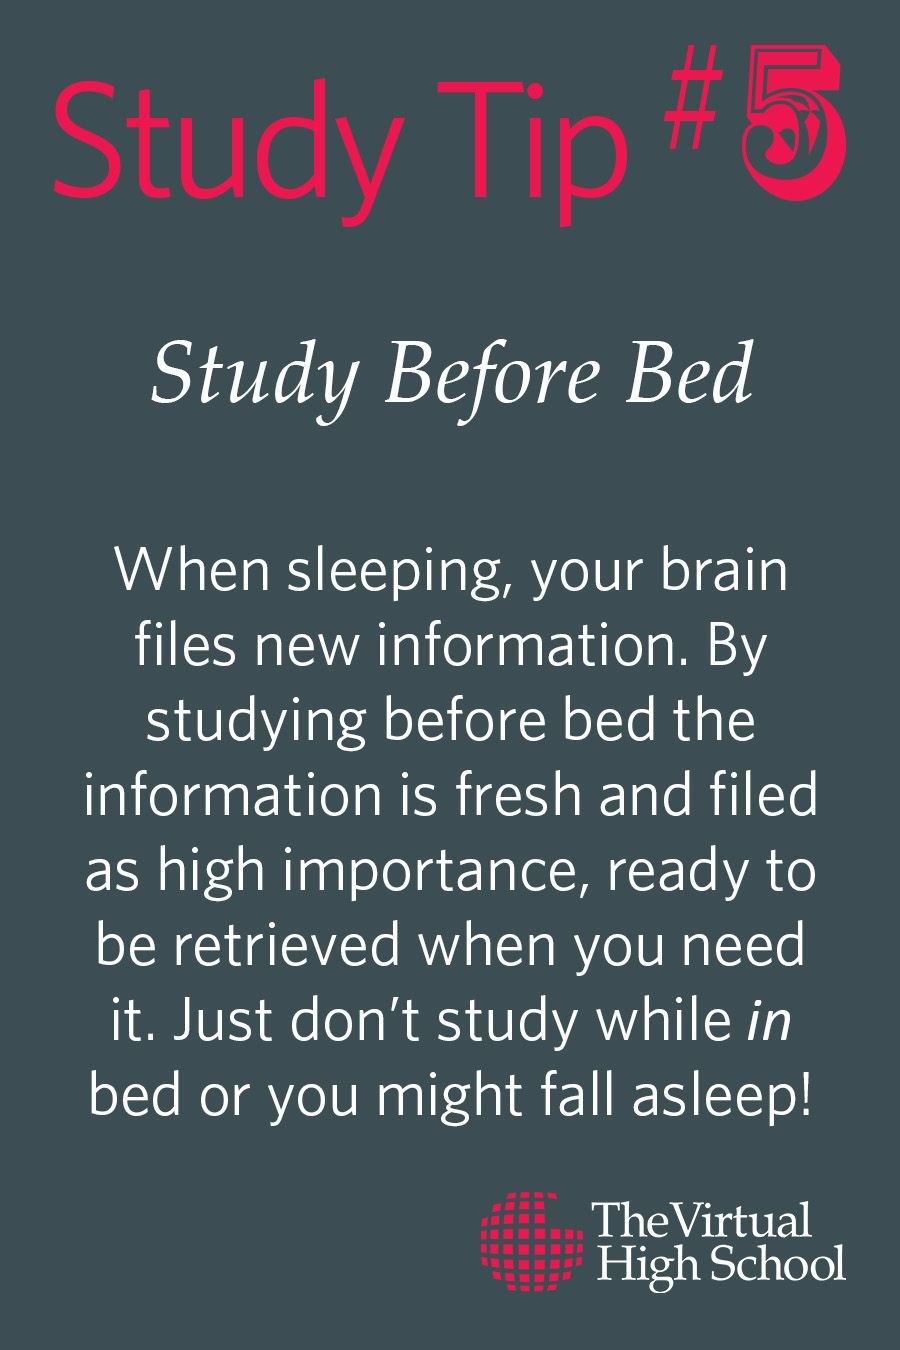 7 Research-Backed Tips To Help You Study Better ...